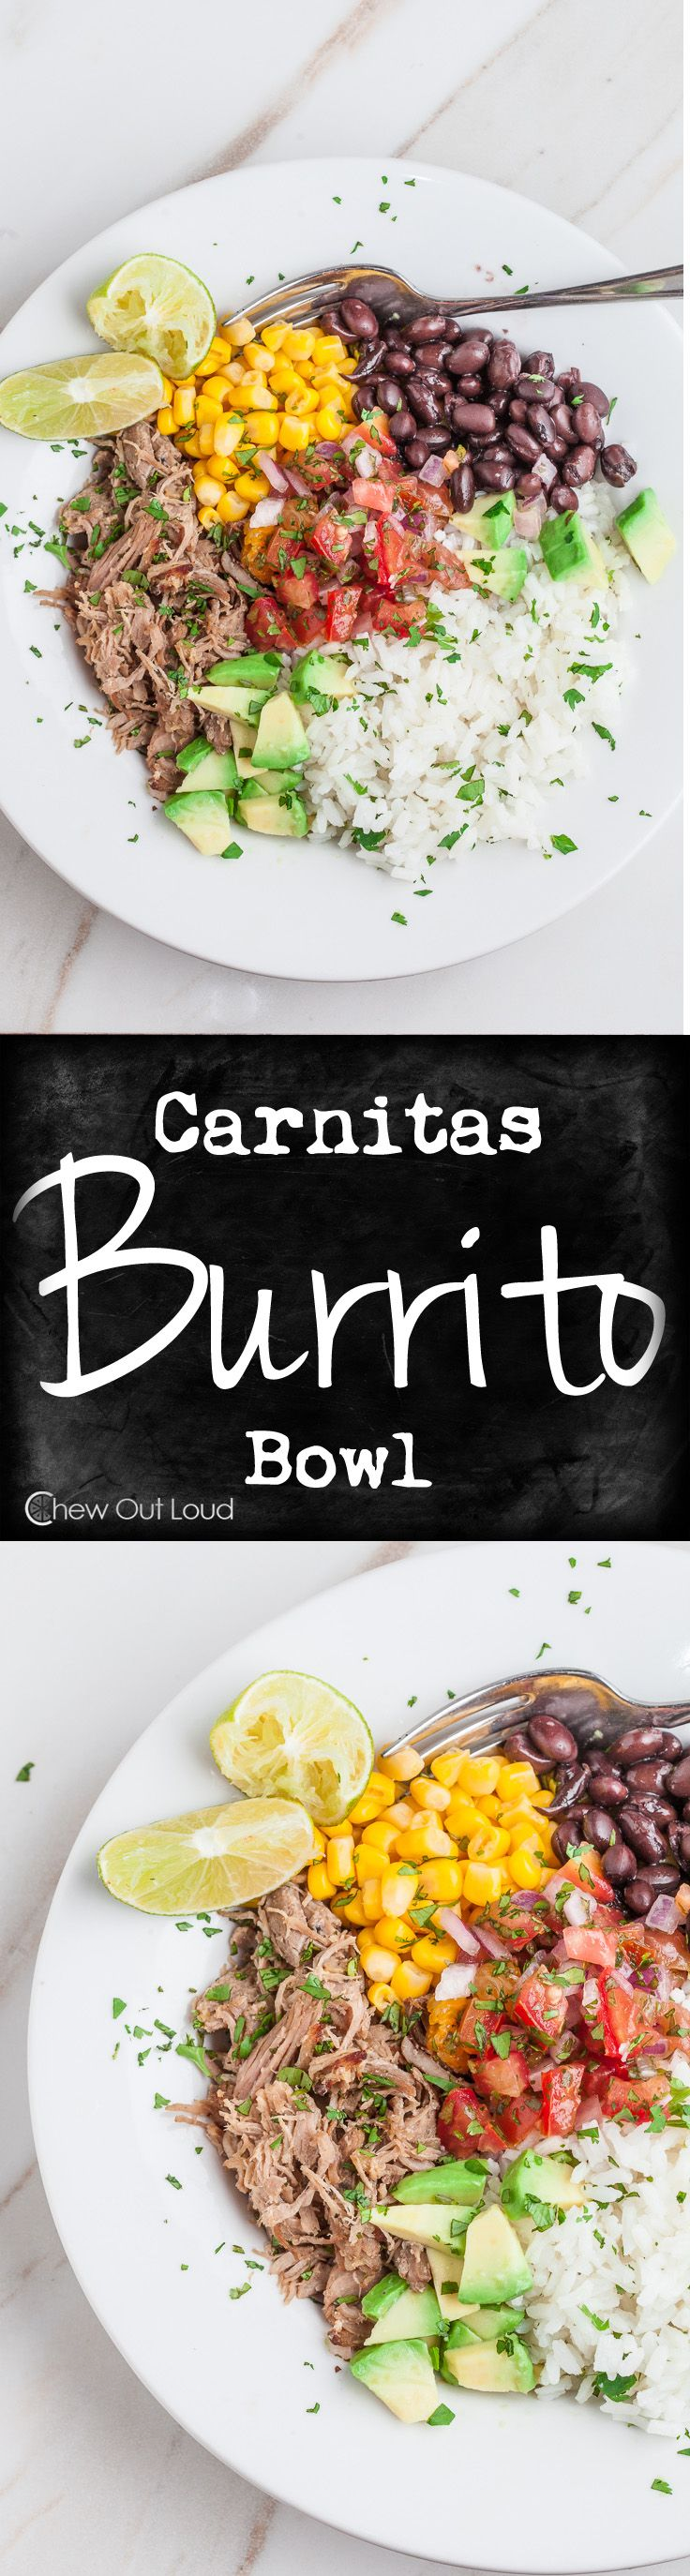 air jordan 13 womens This Carnitas Burrito Bowl is a bowlful of festive  zesty sunshine  It  39 s healthy and big on flavor  A serious people pleaser   mexican  dinner  recipe